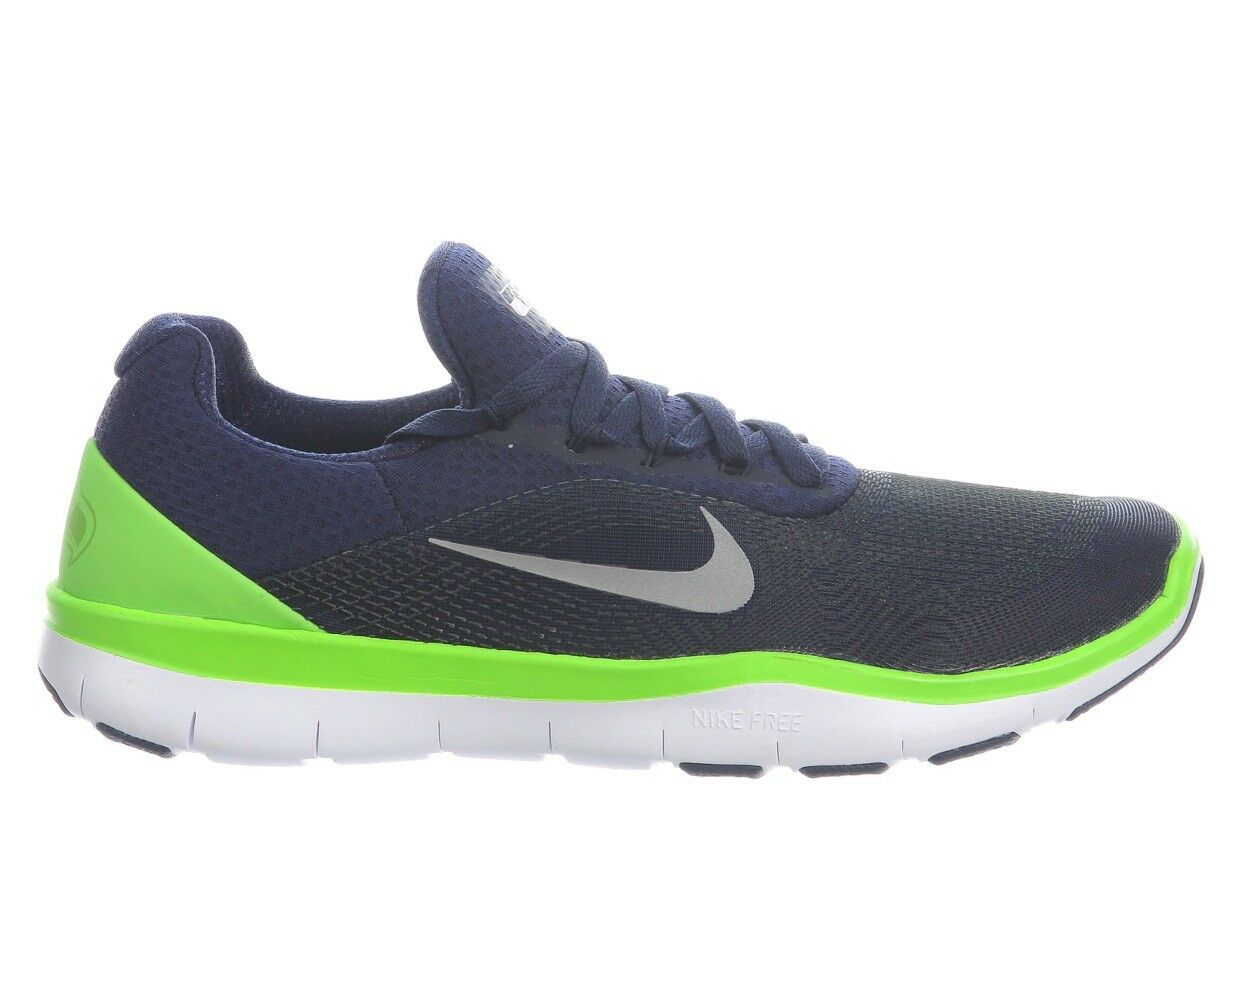 Nike Free Trainer V7 Seahawks Mens AA1948-400 Navy Green Training shoes Size 8